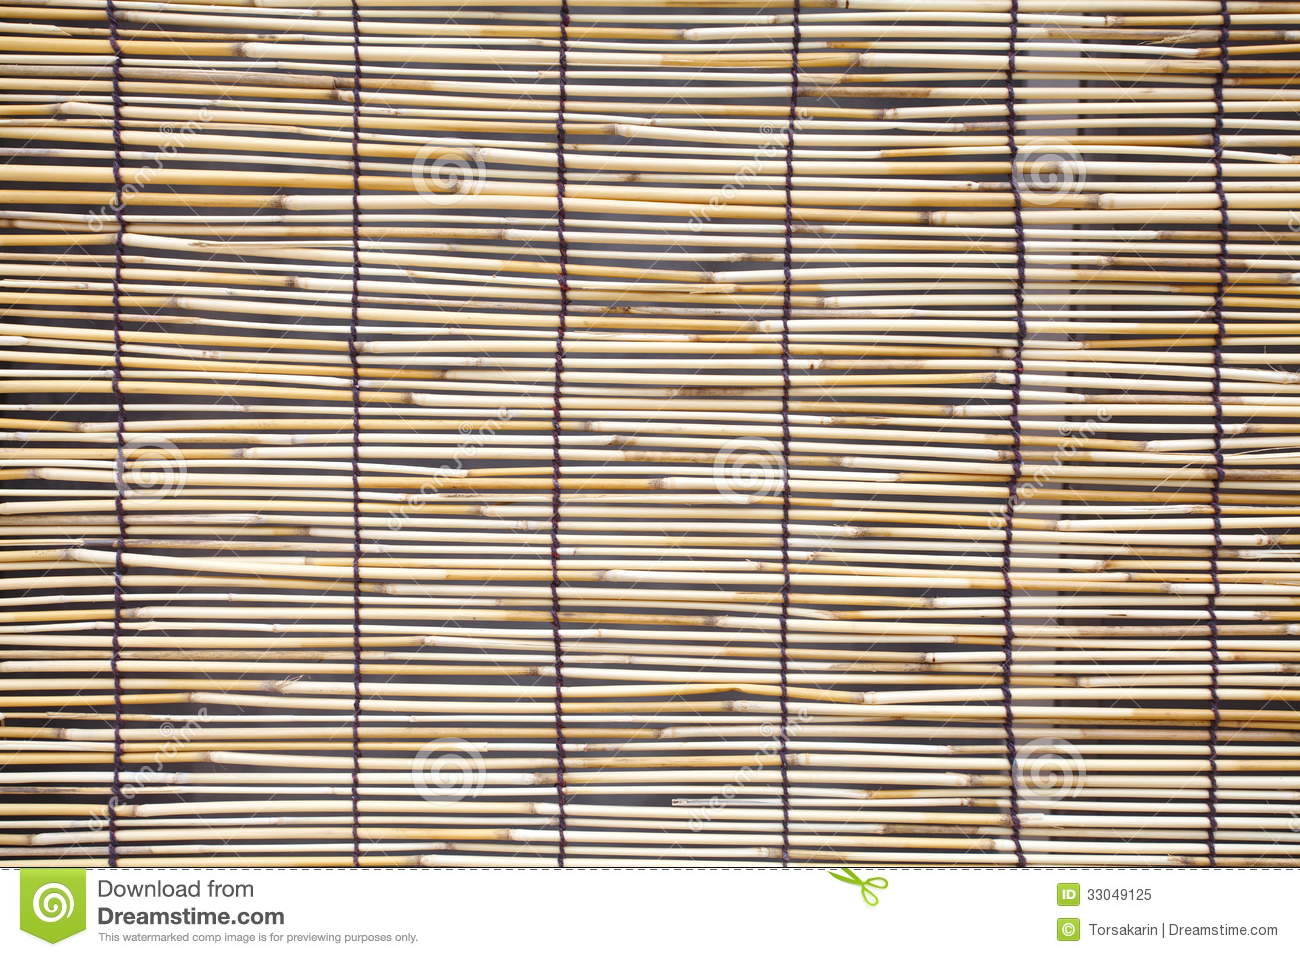 Bamboo Blind Pattern Royalty Free Stock Photo Image